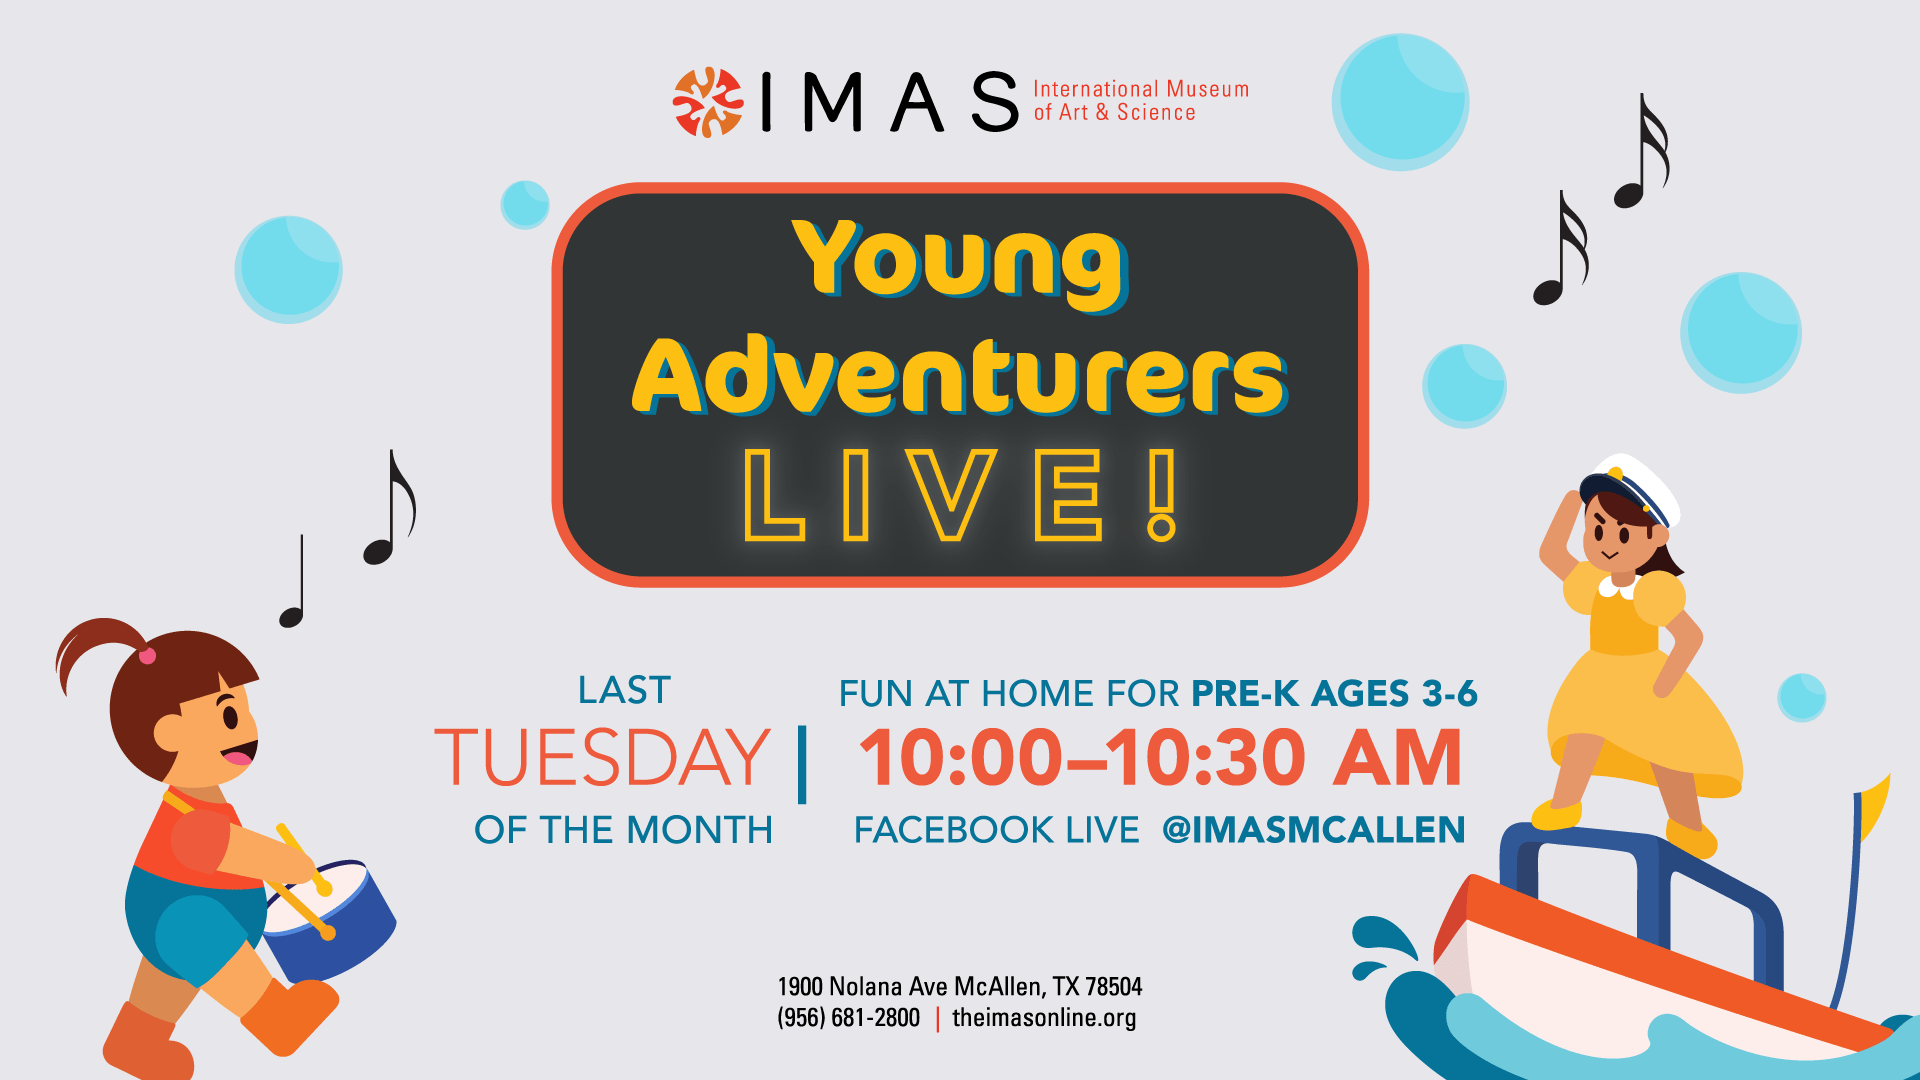 Young Adventurers Live with the IMAS